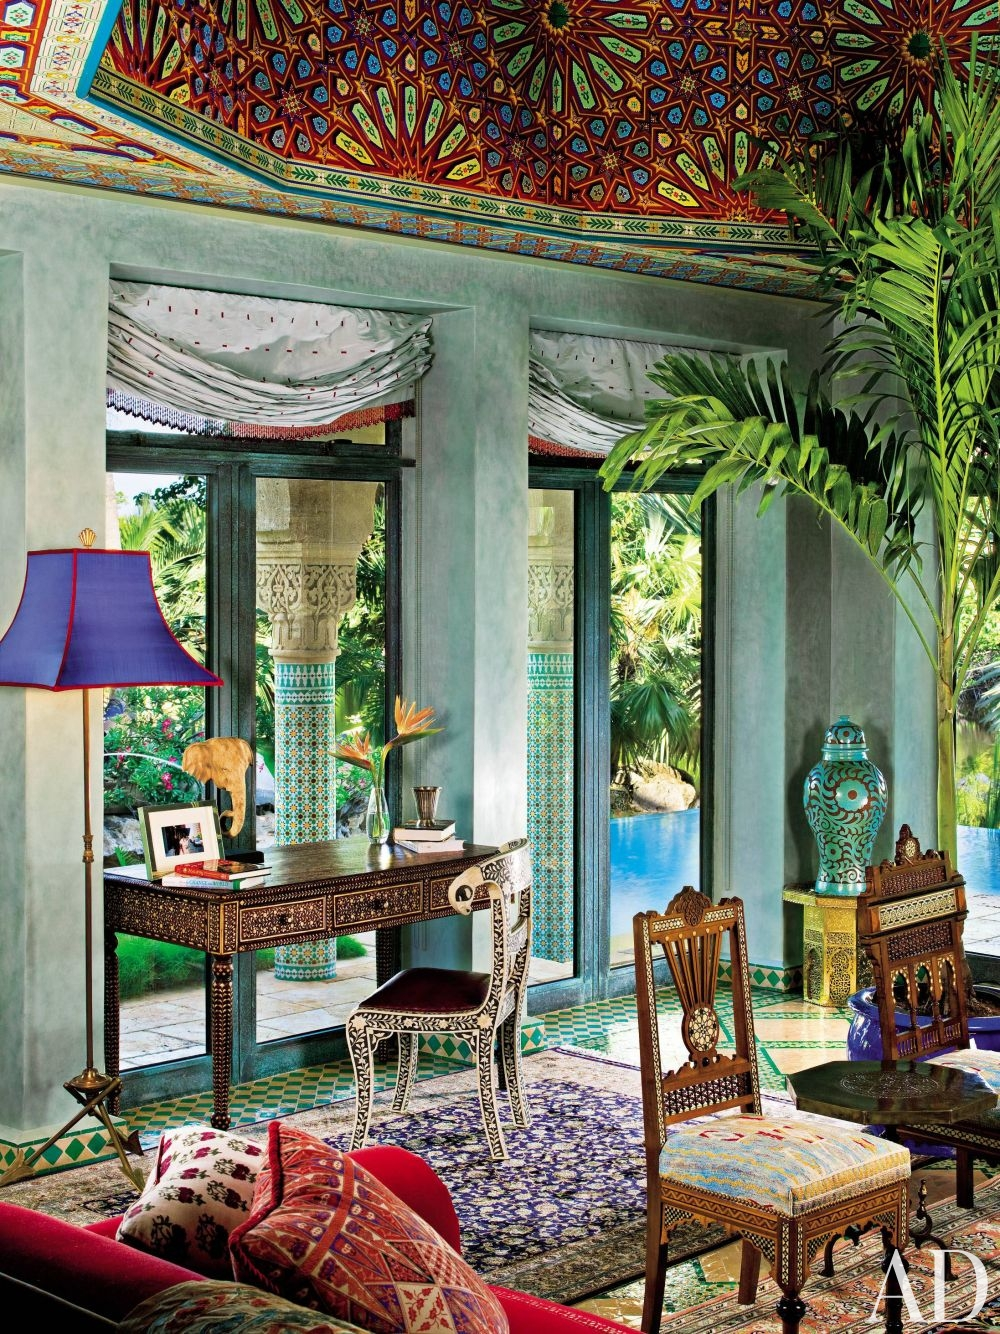 Take A Trip To Morocco 7 Tips To Nail This Exotic Decorating Trend Straight From The Dessert